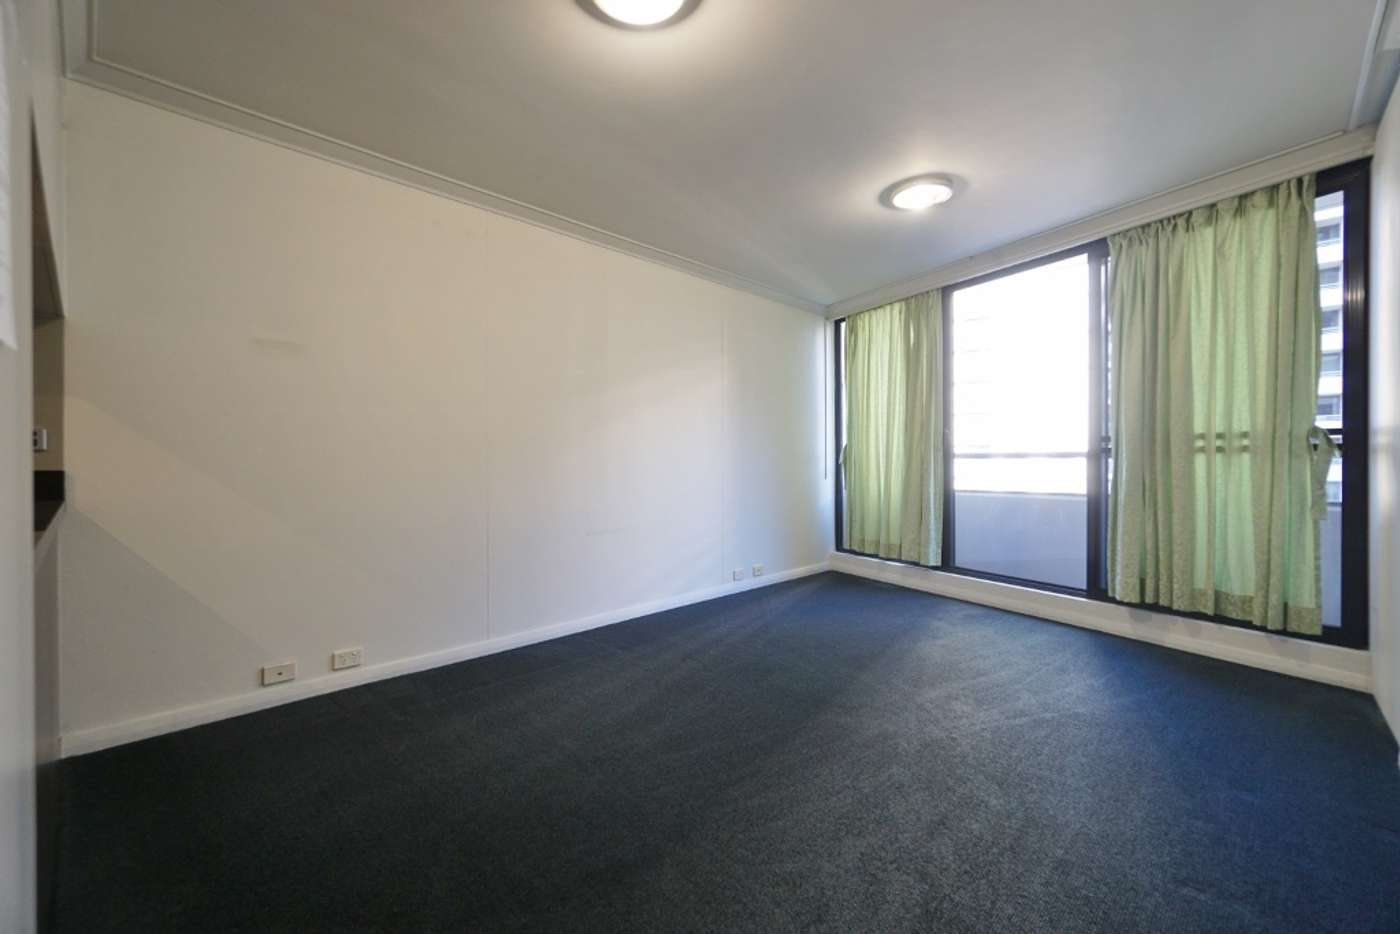 Main view of Homely apartment listing, 515/3 Herbert Street, St Leonards NSW 2065